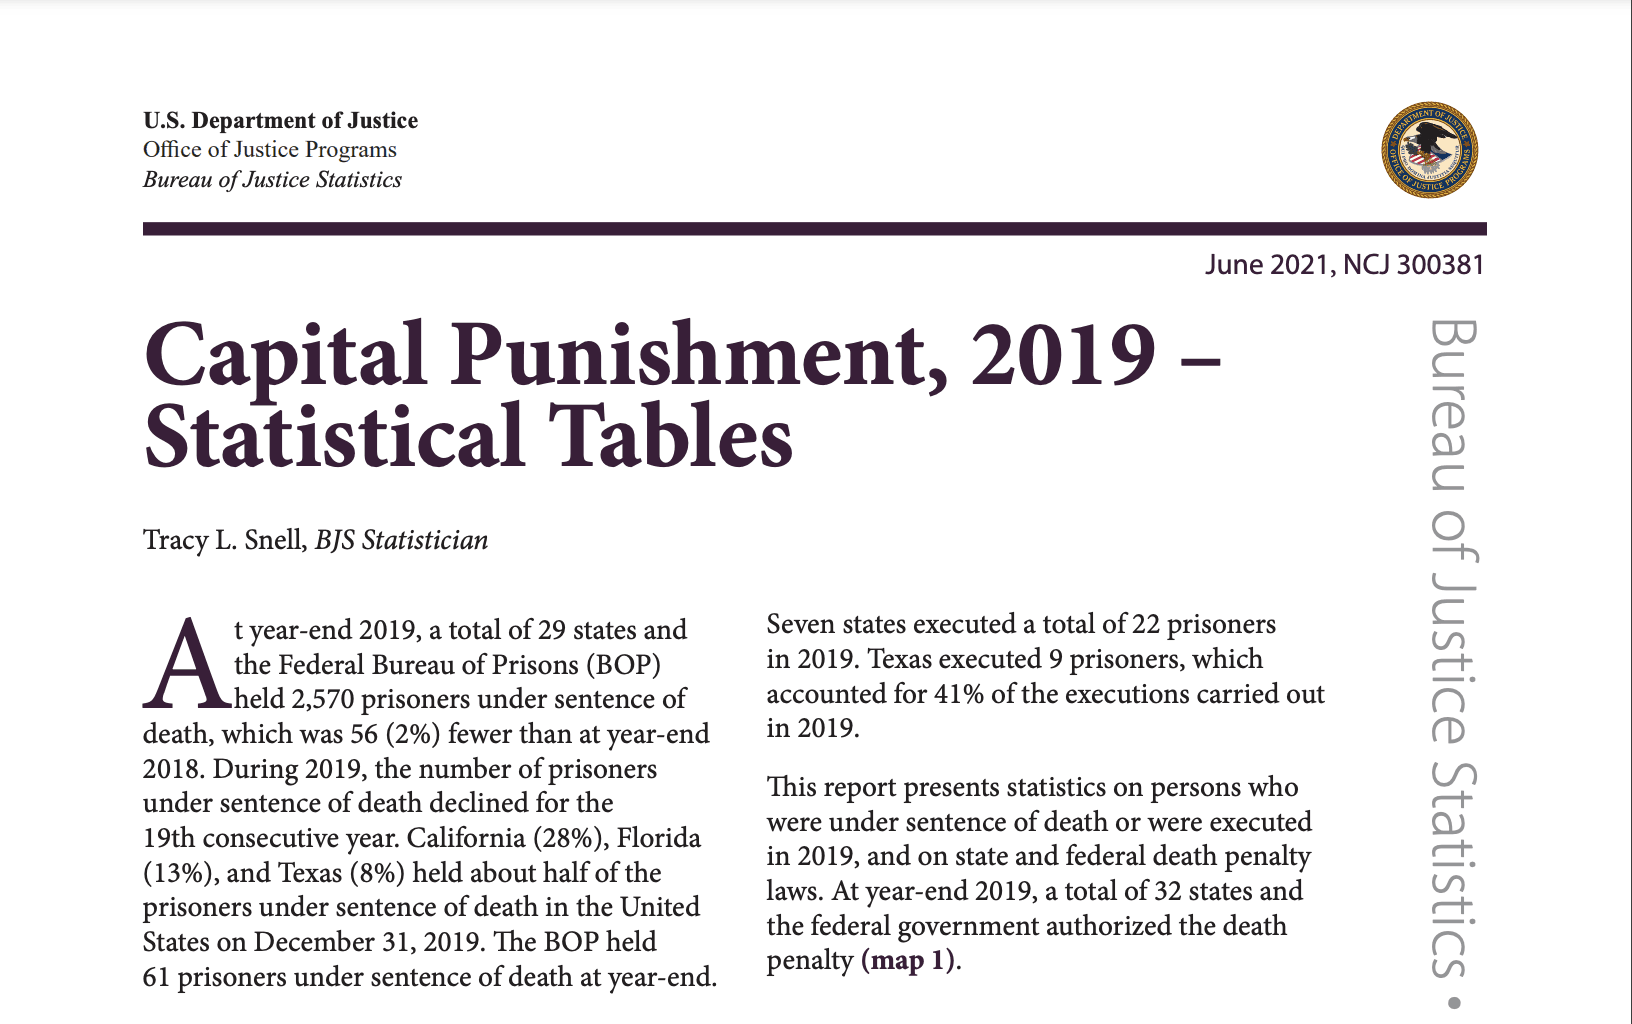 Bureau of Justice Statistics Reports Number on Death Row Down, Average Time on Death Row Approaches 19 Years